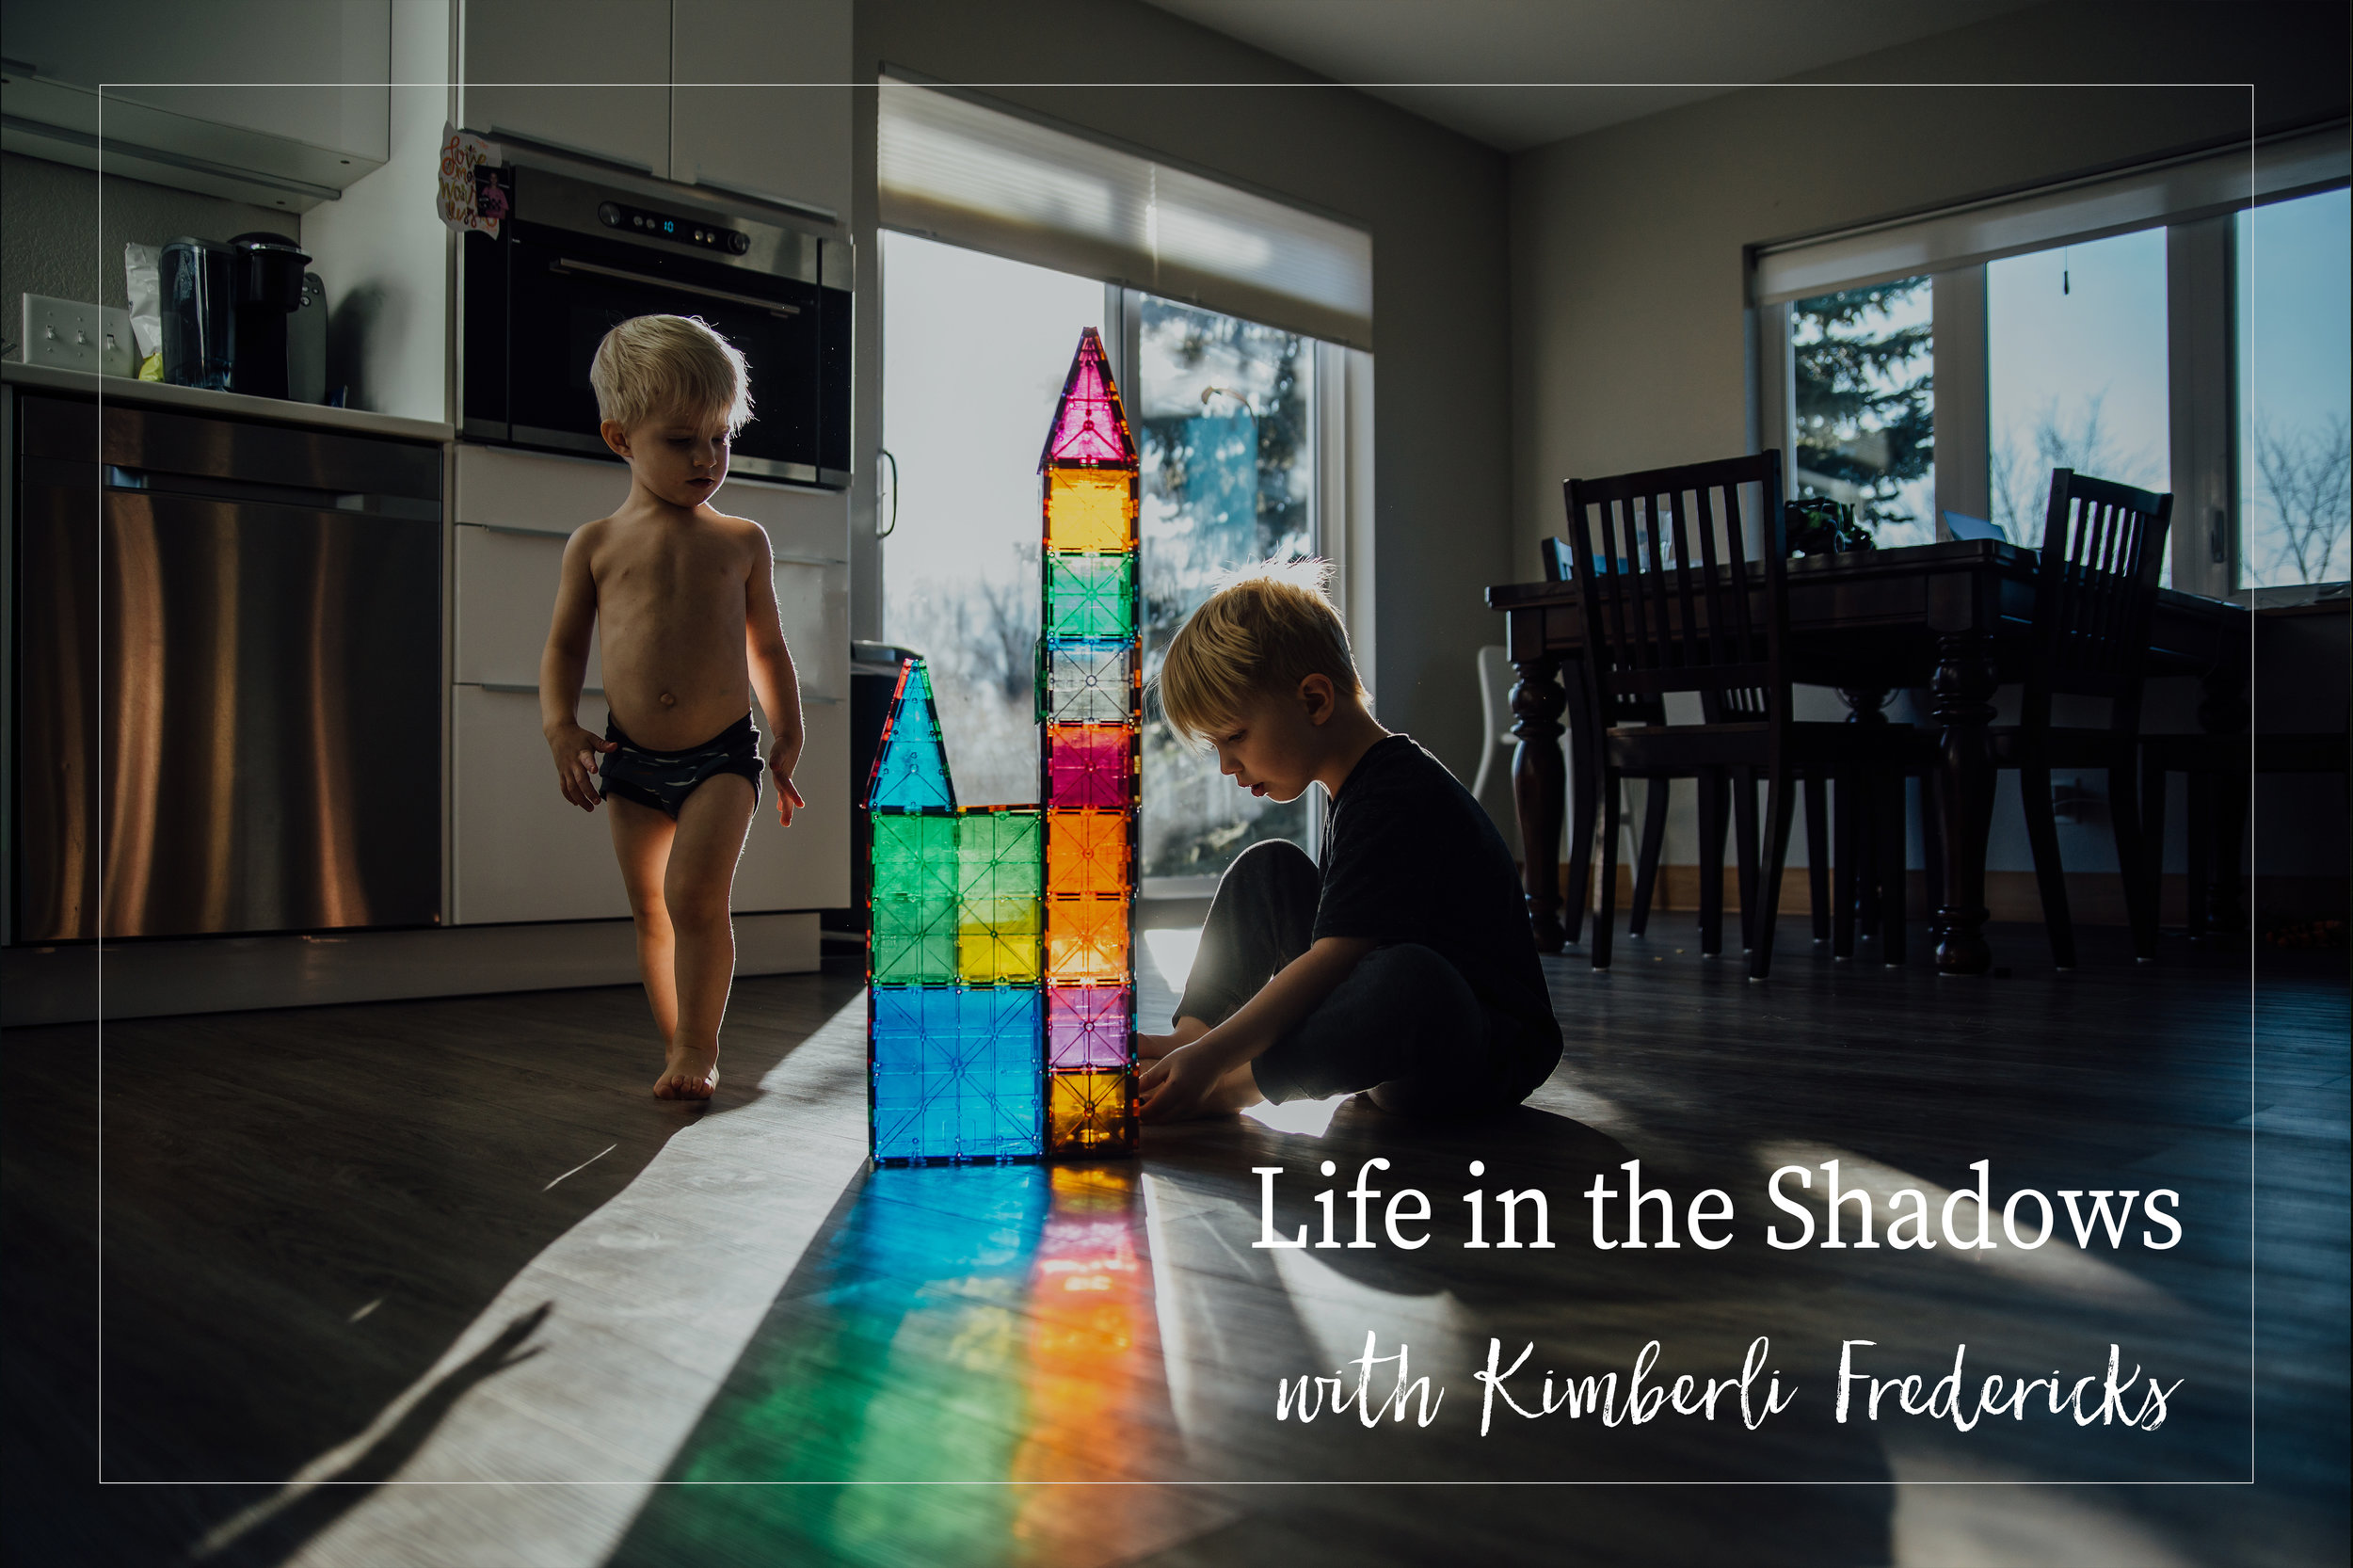 Life in the Shadows - with Kimberli Fredericks